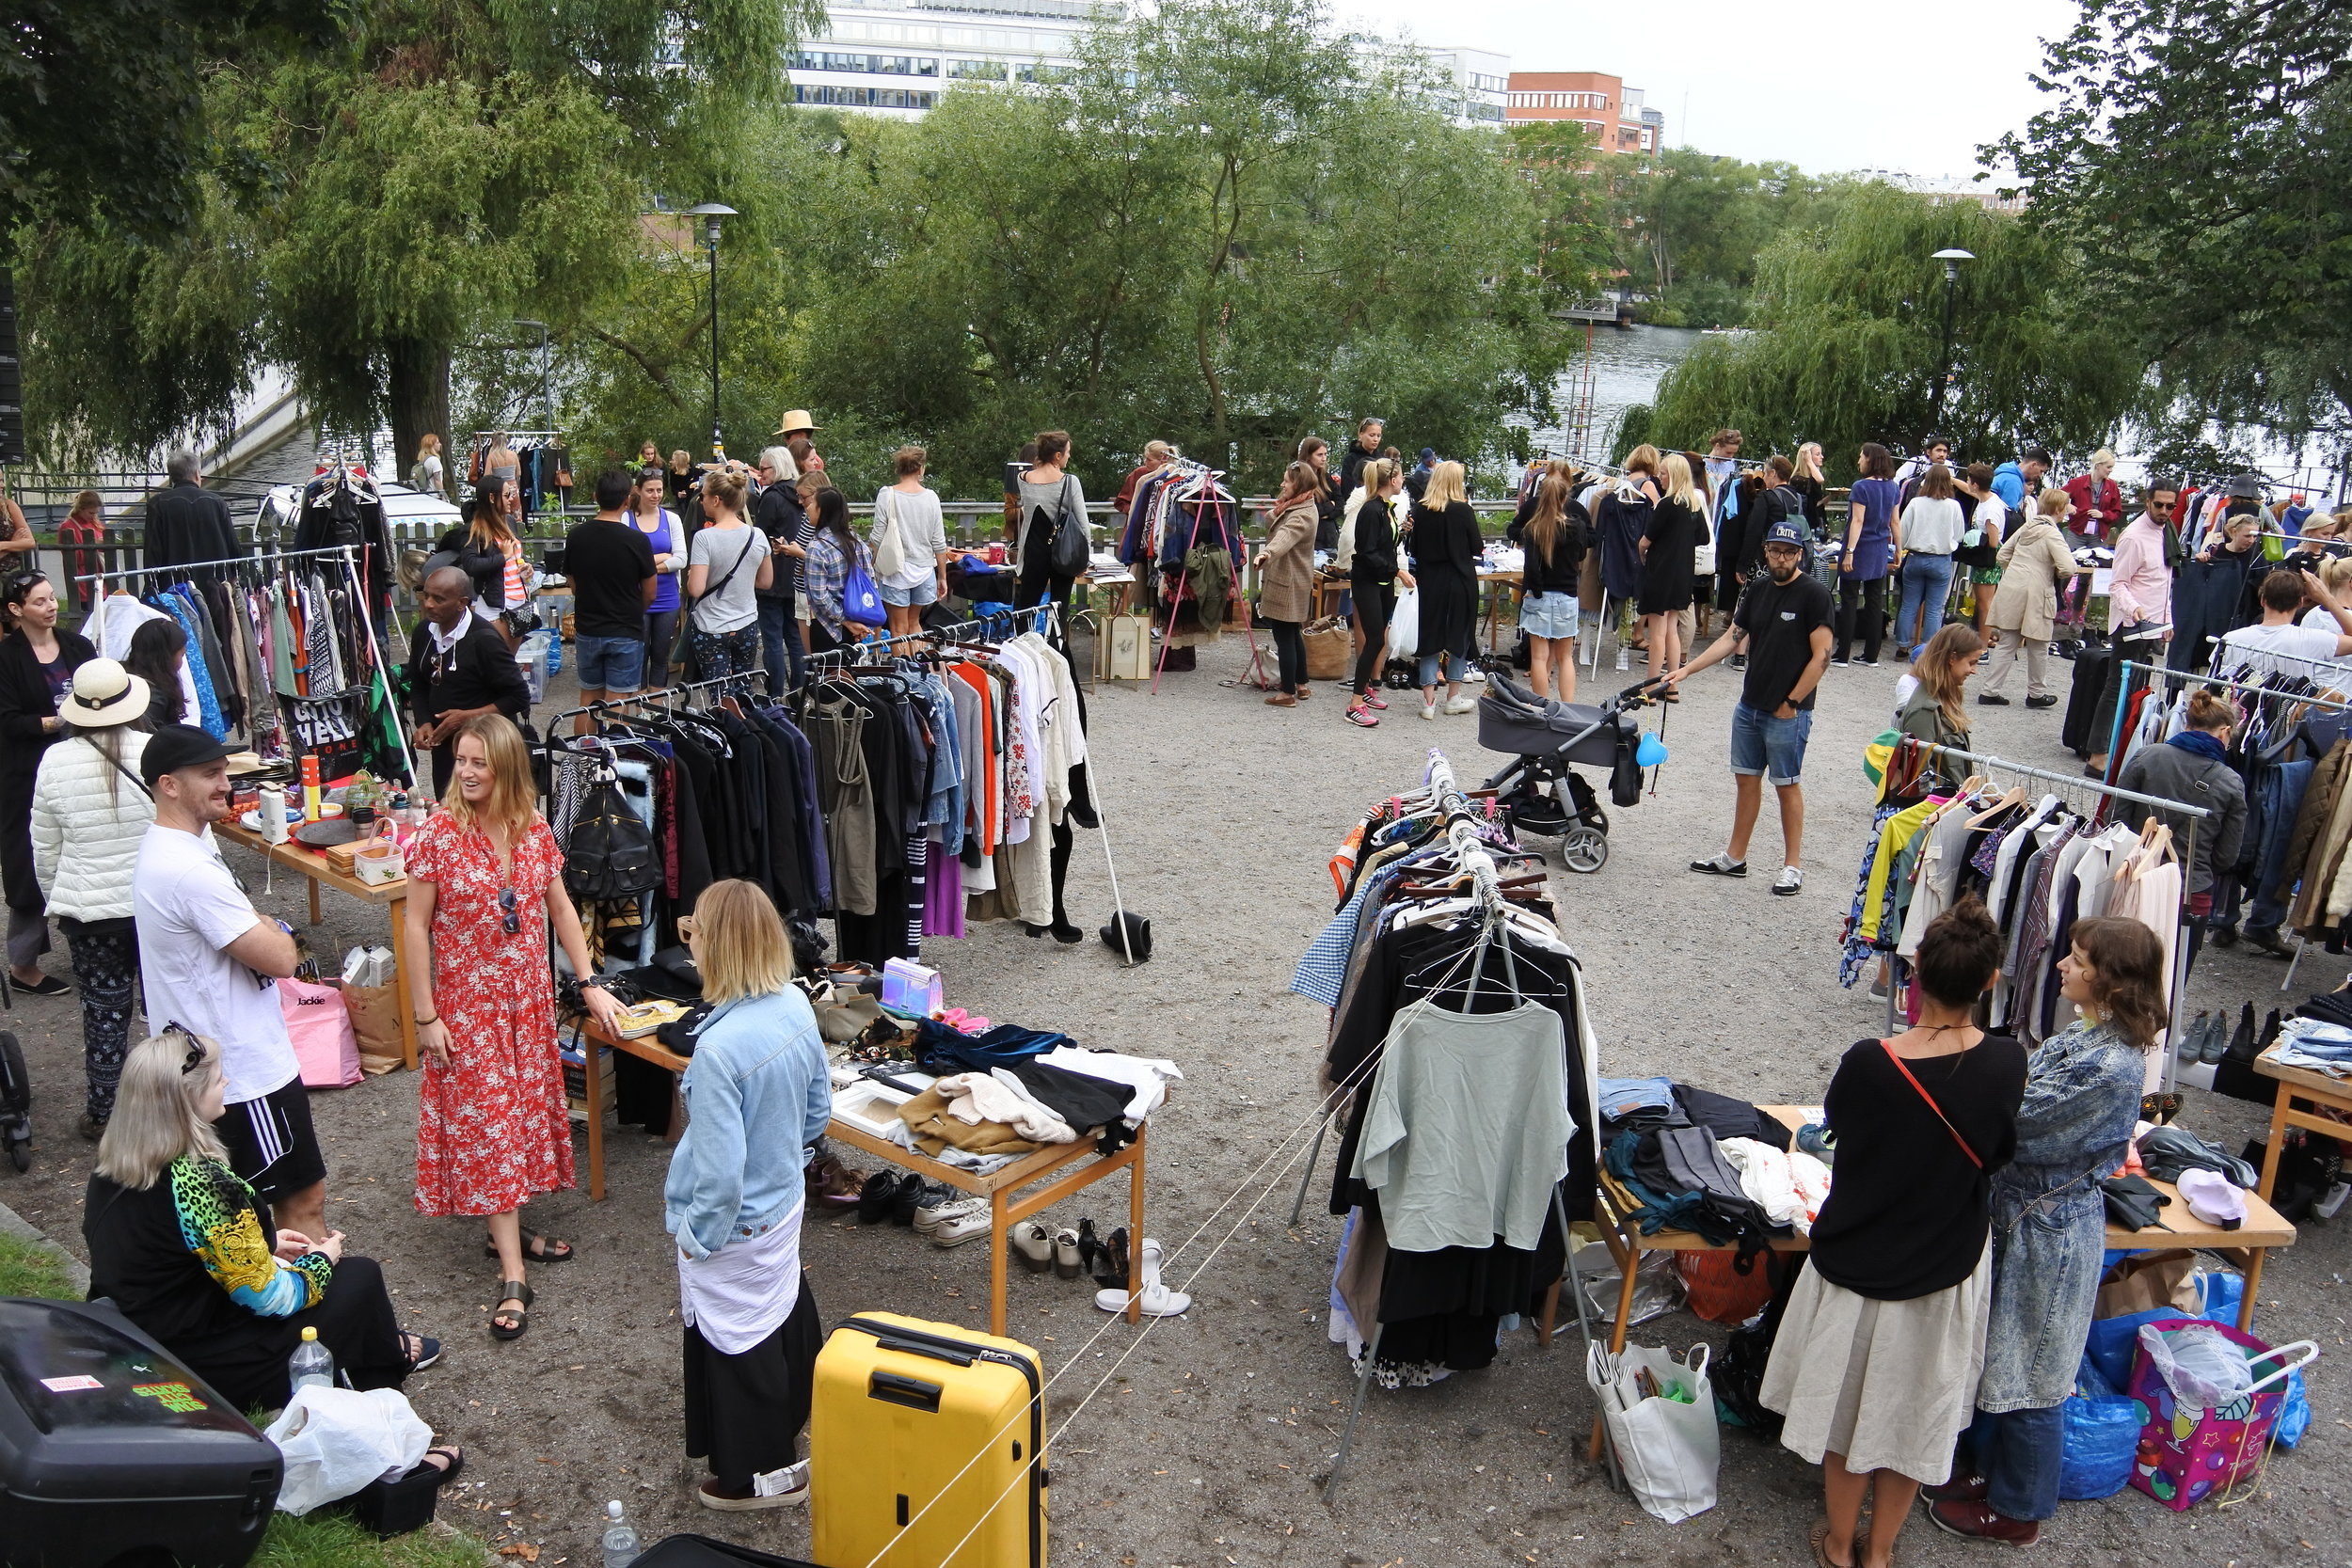 Clothing vendors at Hornstulls Marknad.